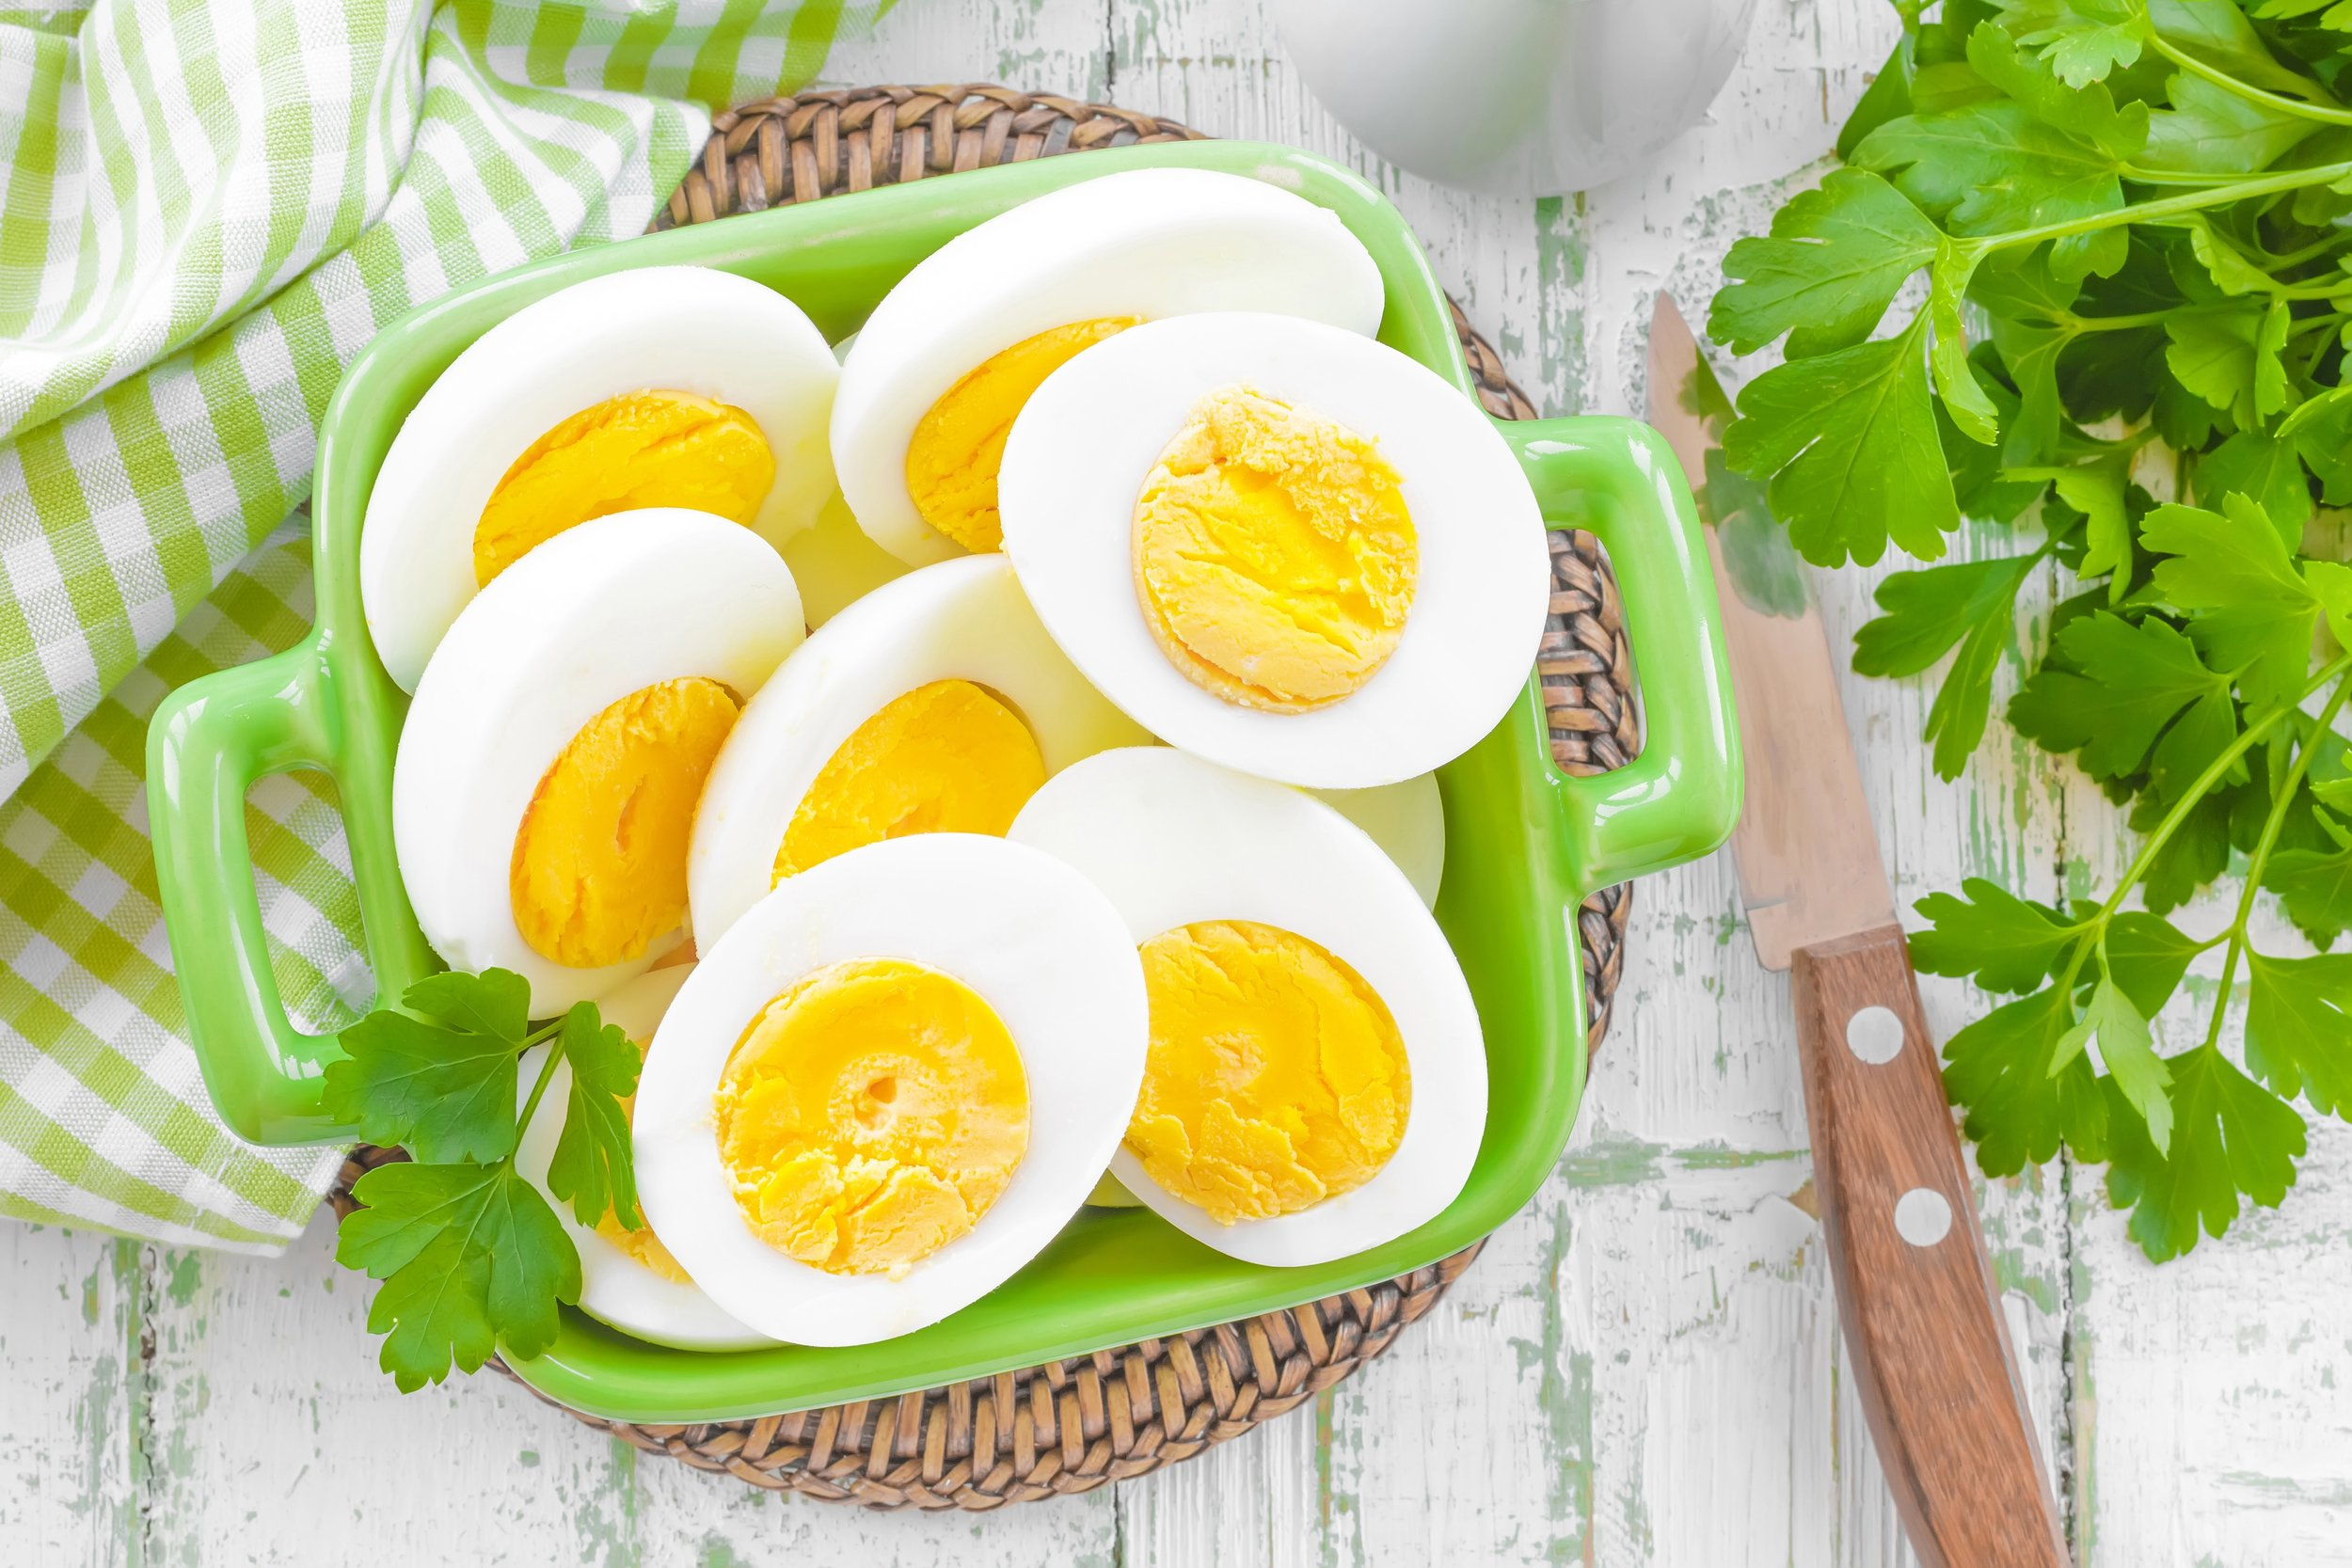 products-eggs.jpg